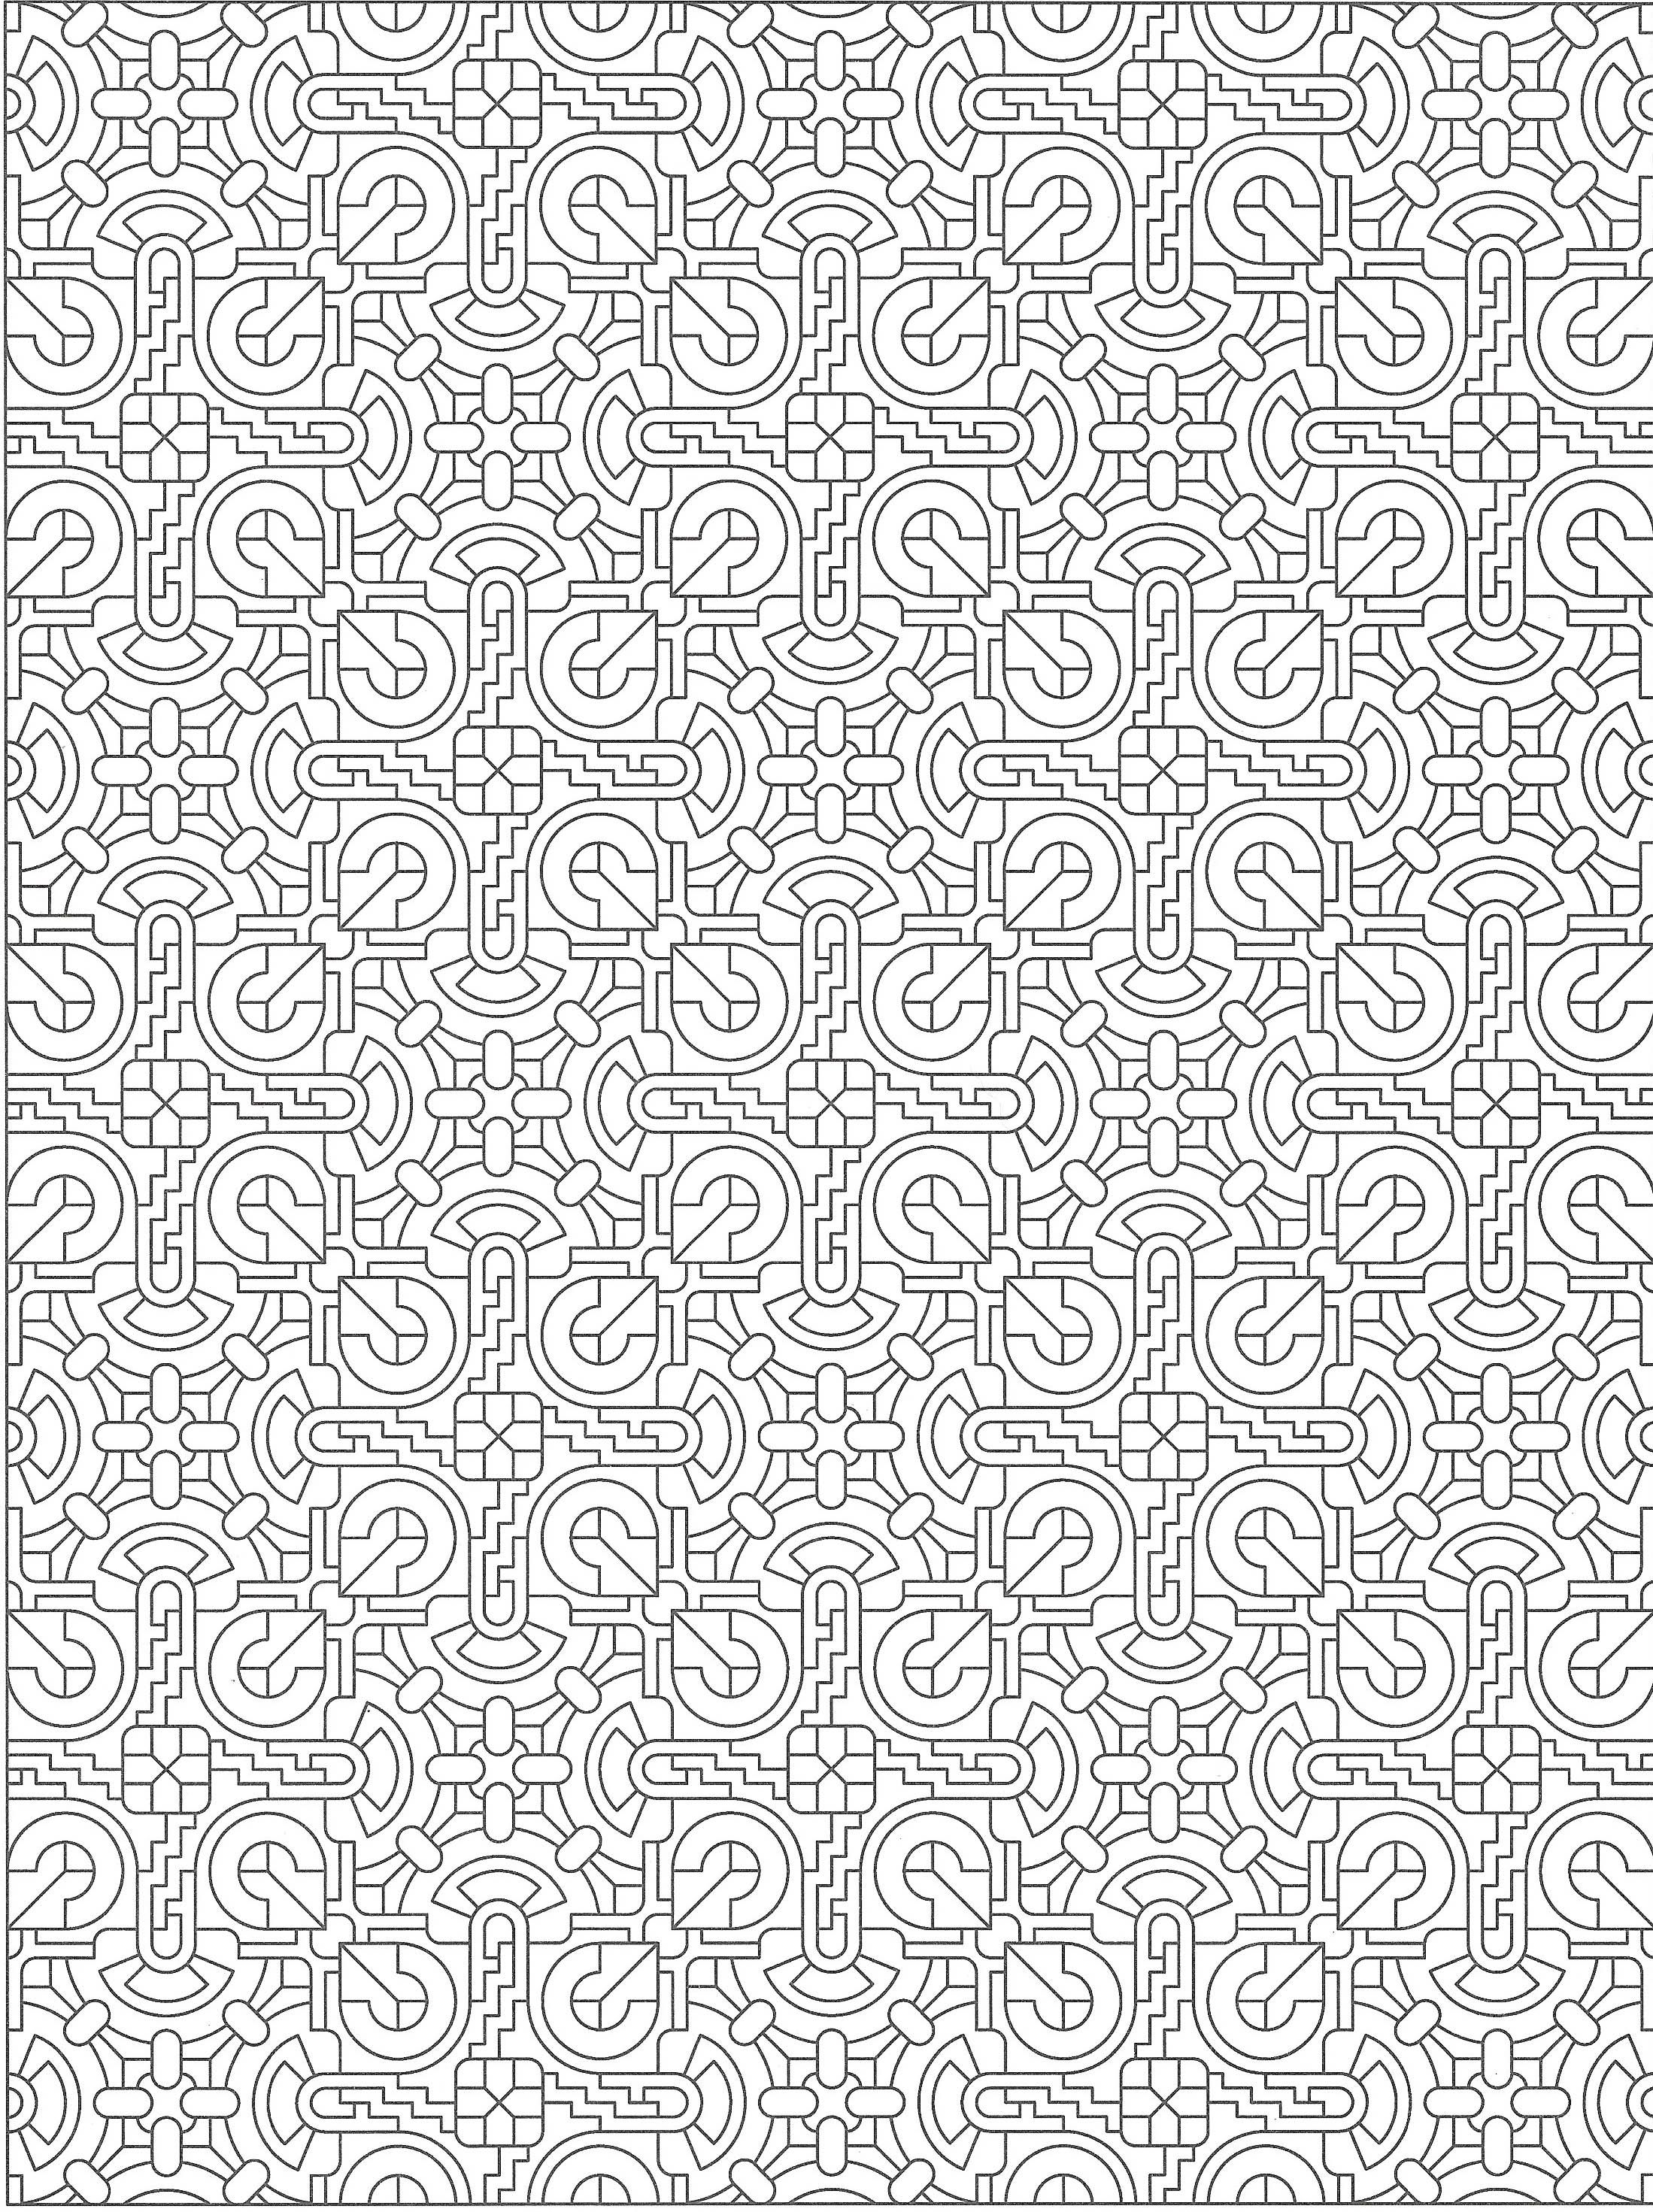 Creative Haven Tessellations Coloring Page Geometric Coloring Pages Coloring Pages Pattern Coloring Pages